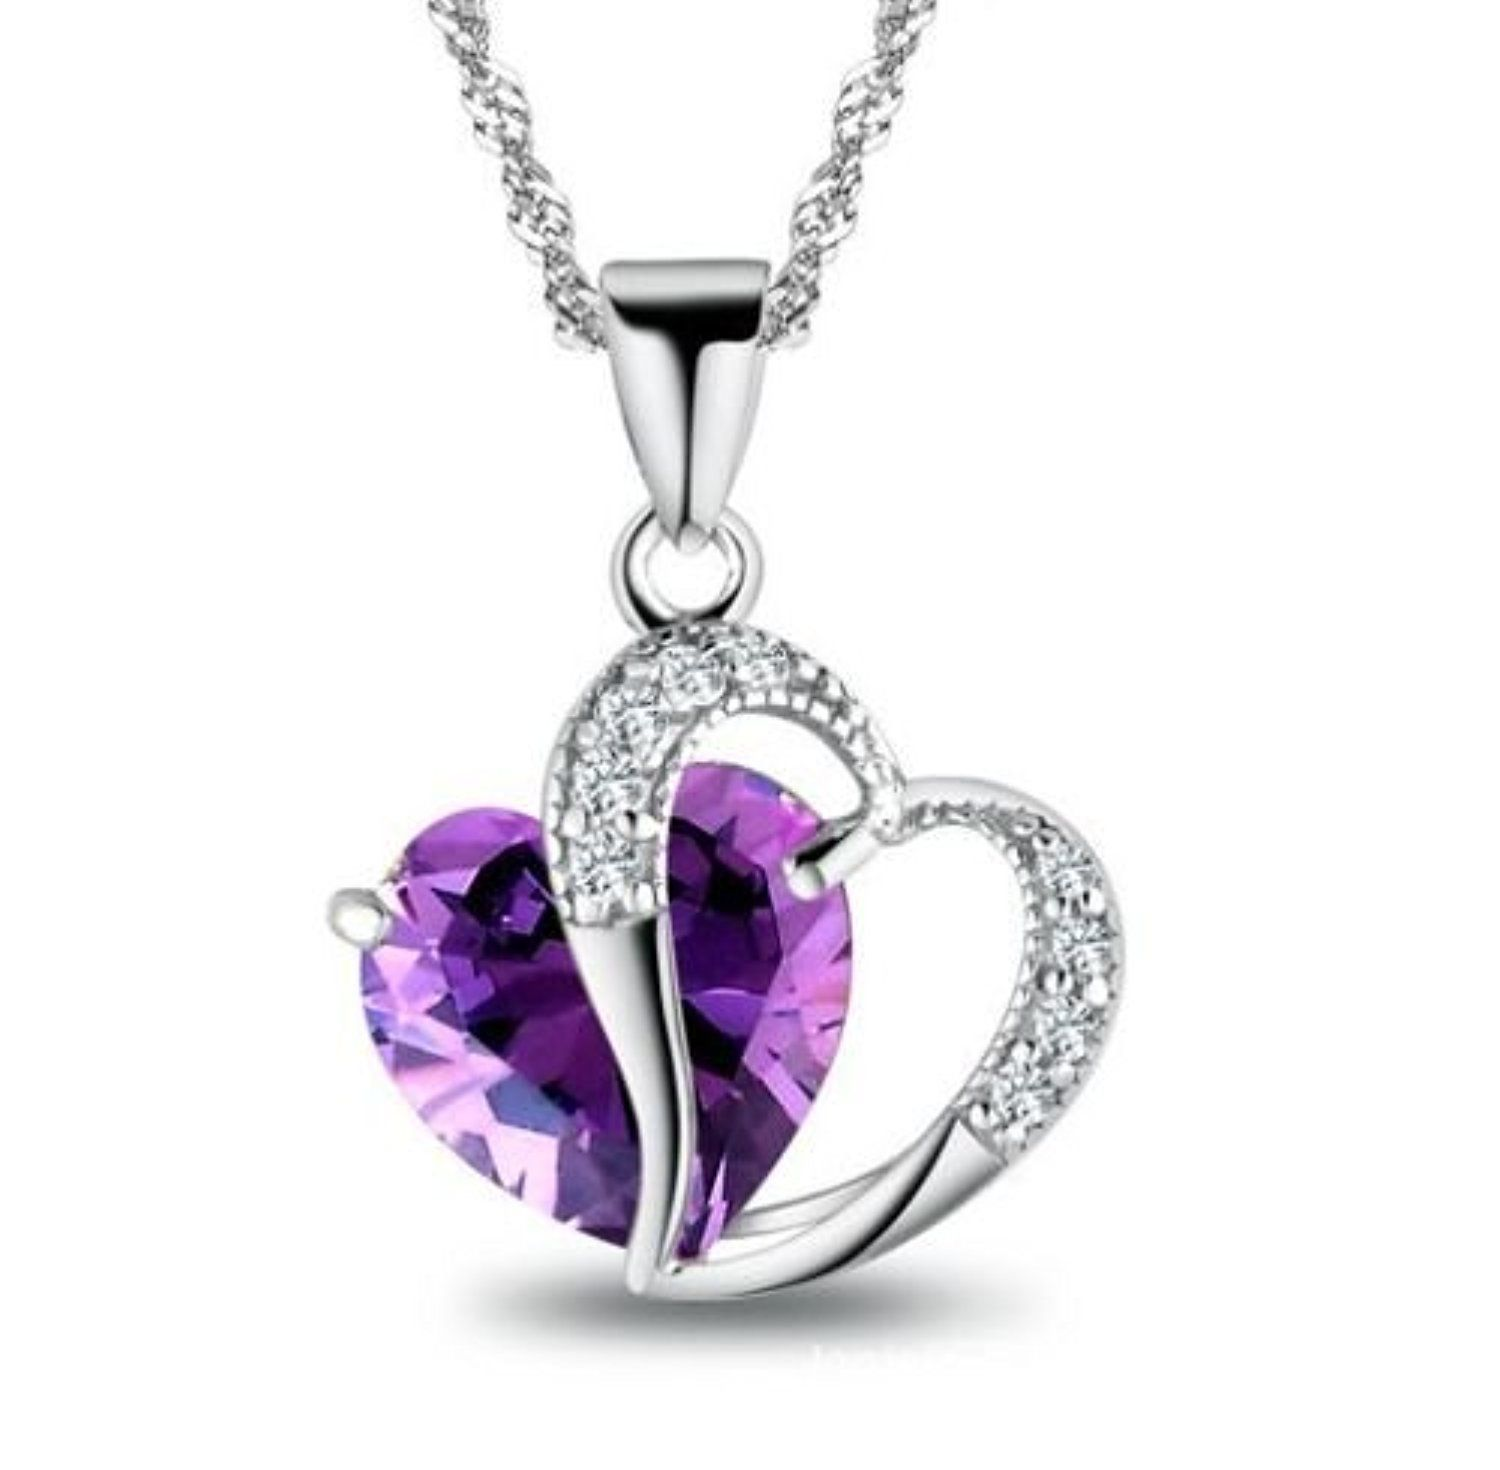 Romantic purple Silver Purple Gemstone Heart Nice Necklace Pendant